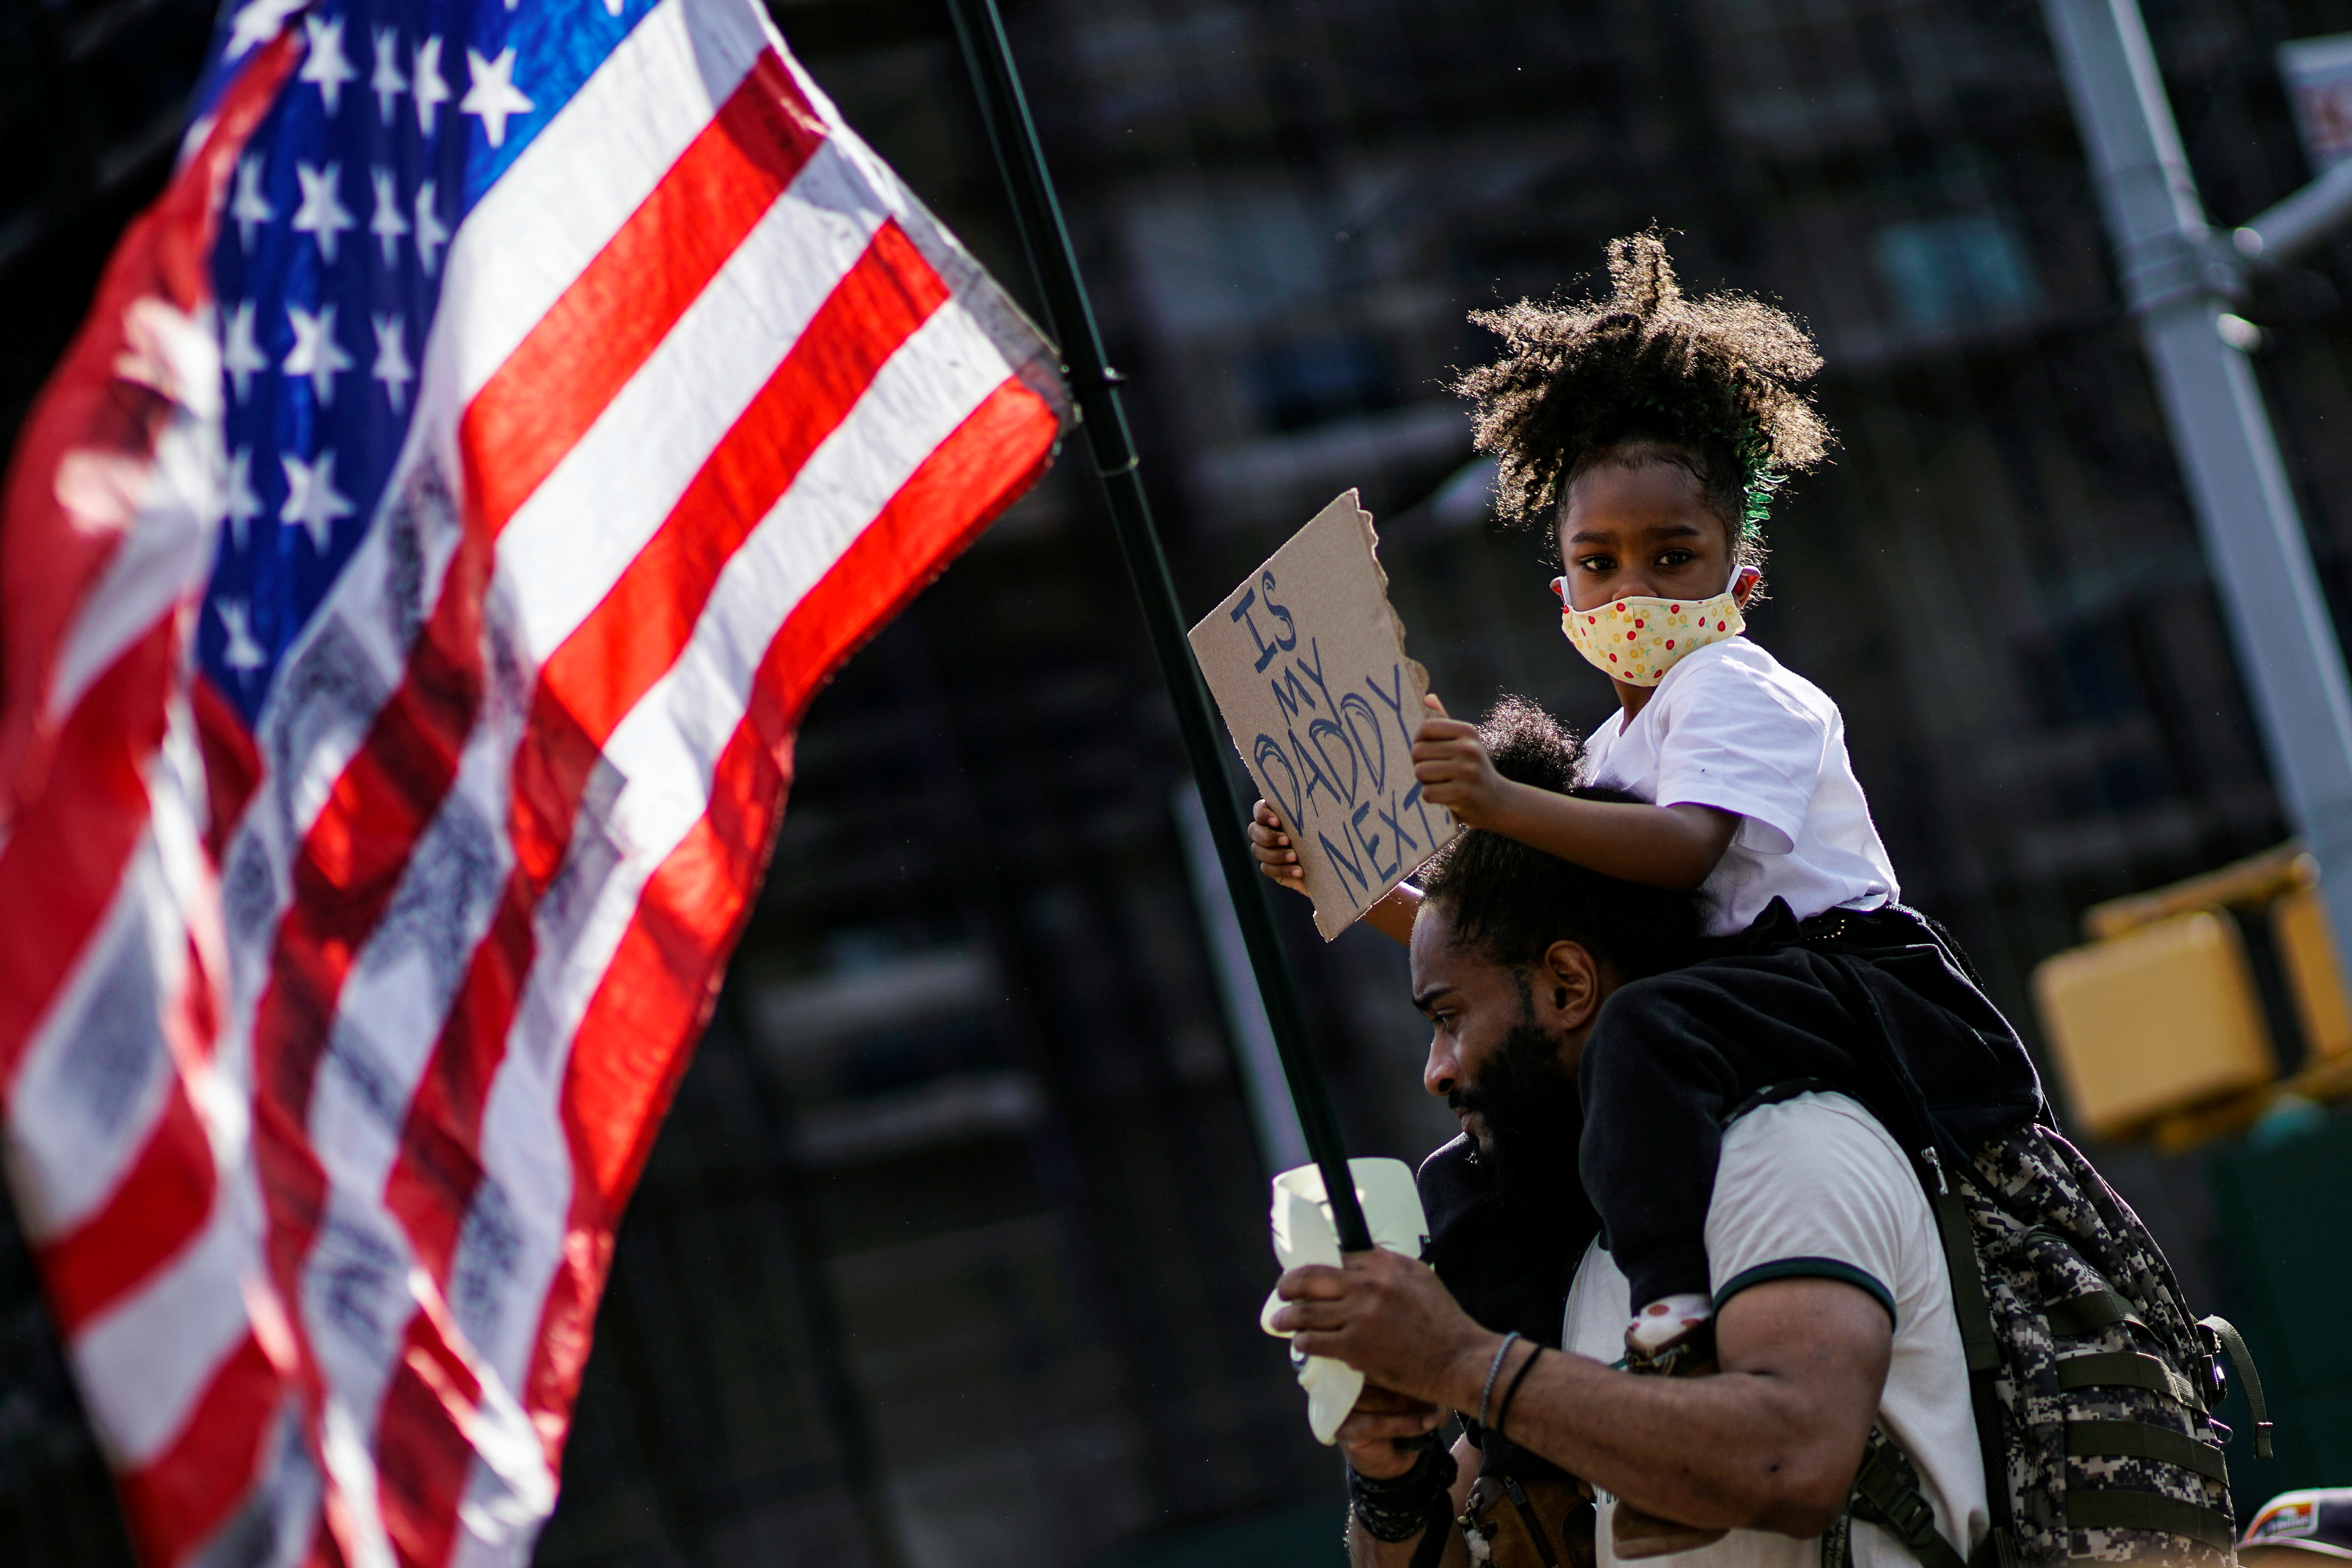 A child looks on with a sign while her father carries a U.S. flag during a protest against racial inequality in the aftermath of the death in Minneapolis police custody of George Floyd, in front of the at Grand Army Plaza in the Brooklyn borough of New York City, New York, U.S. June 7, 2020. REUTERS/Eduardo Munoz